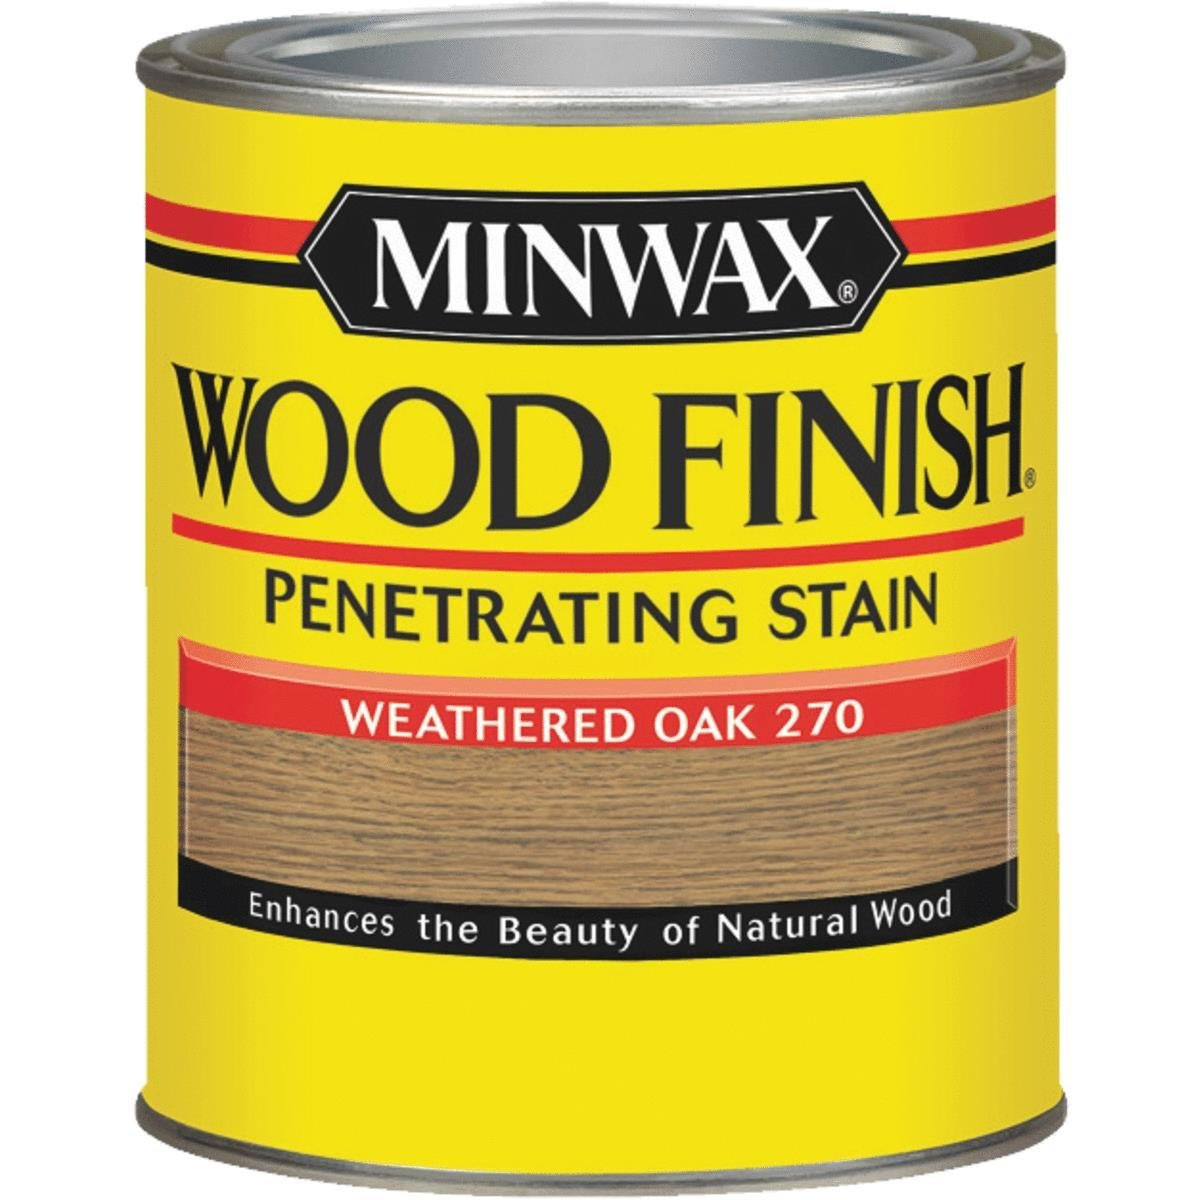 Minwax Hardwood Floor Care System Of Minwax Wood Finish Penetrating Stain 227604444 Do It Best Inside Click to Zoom